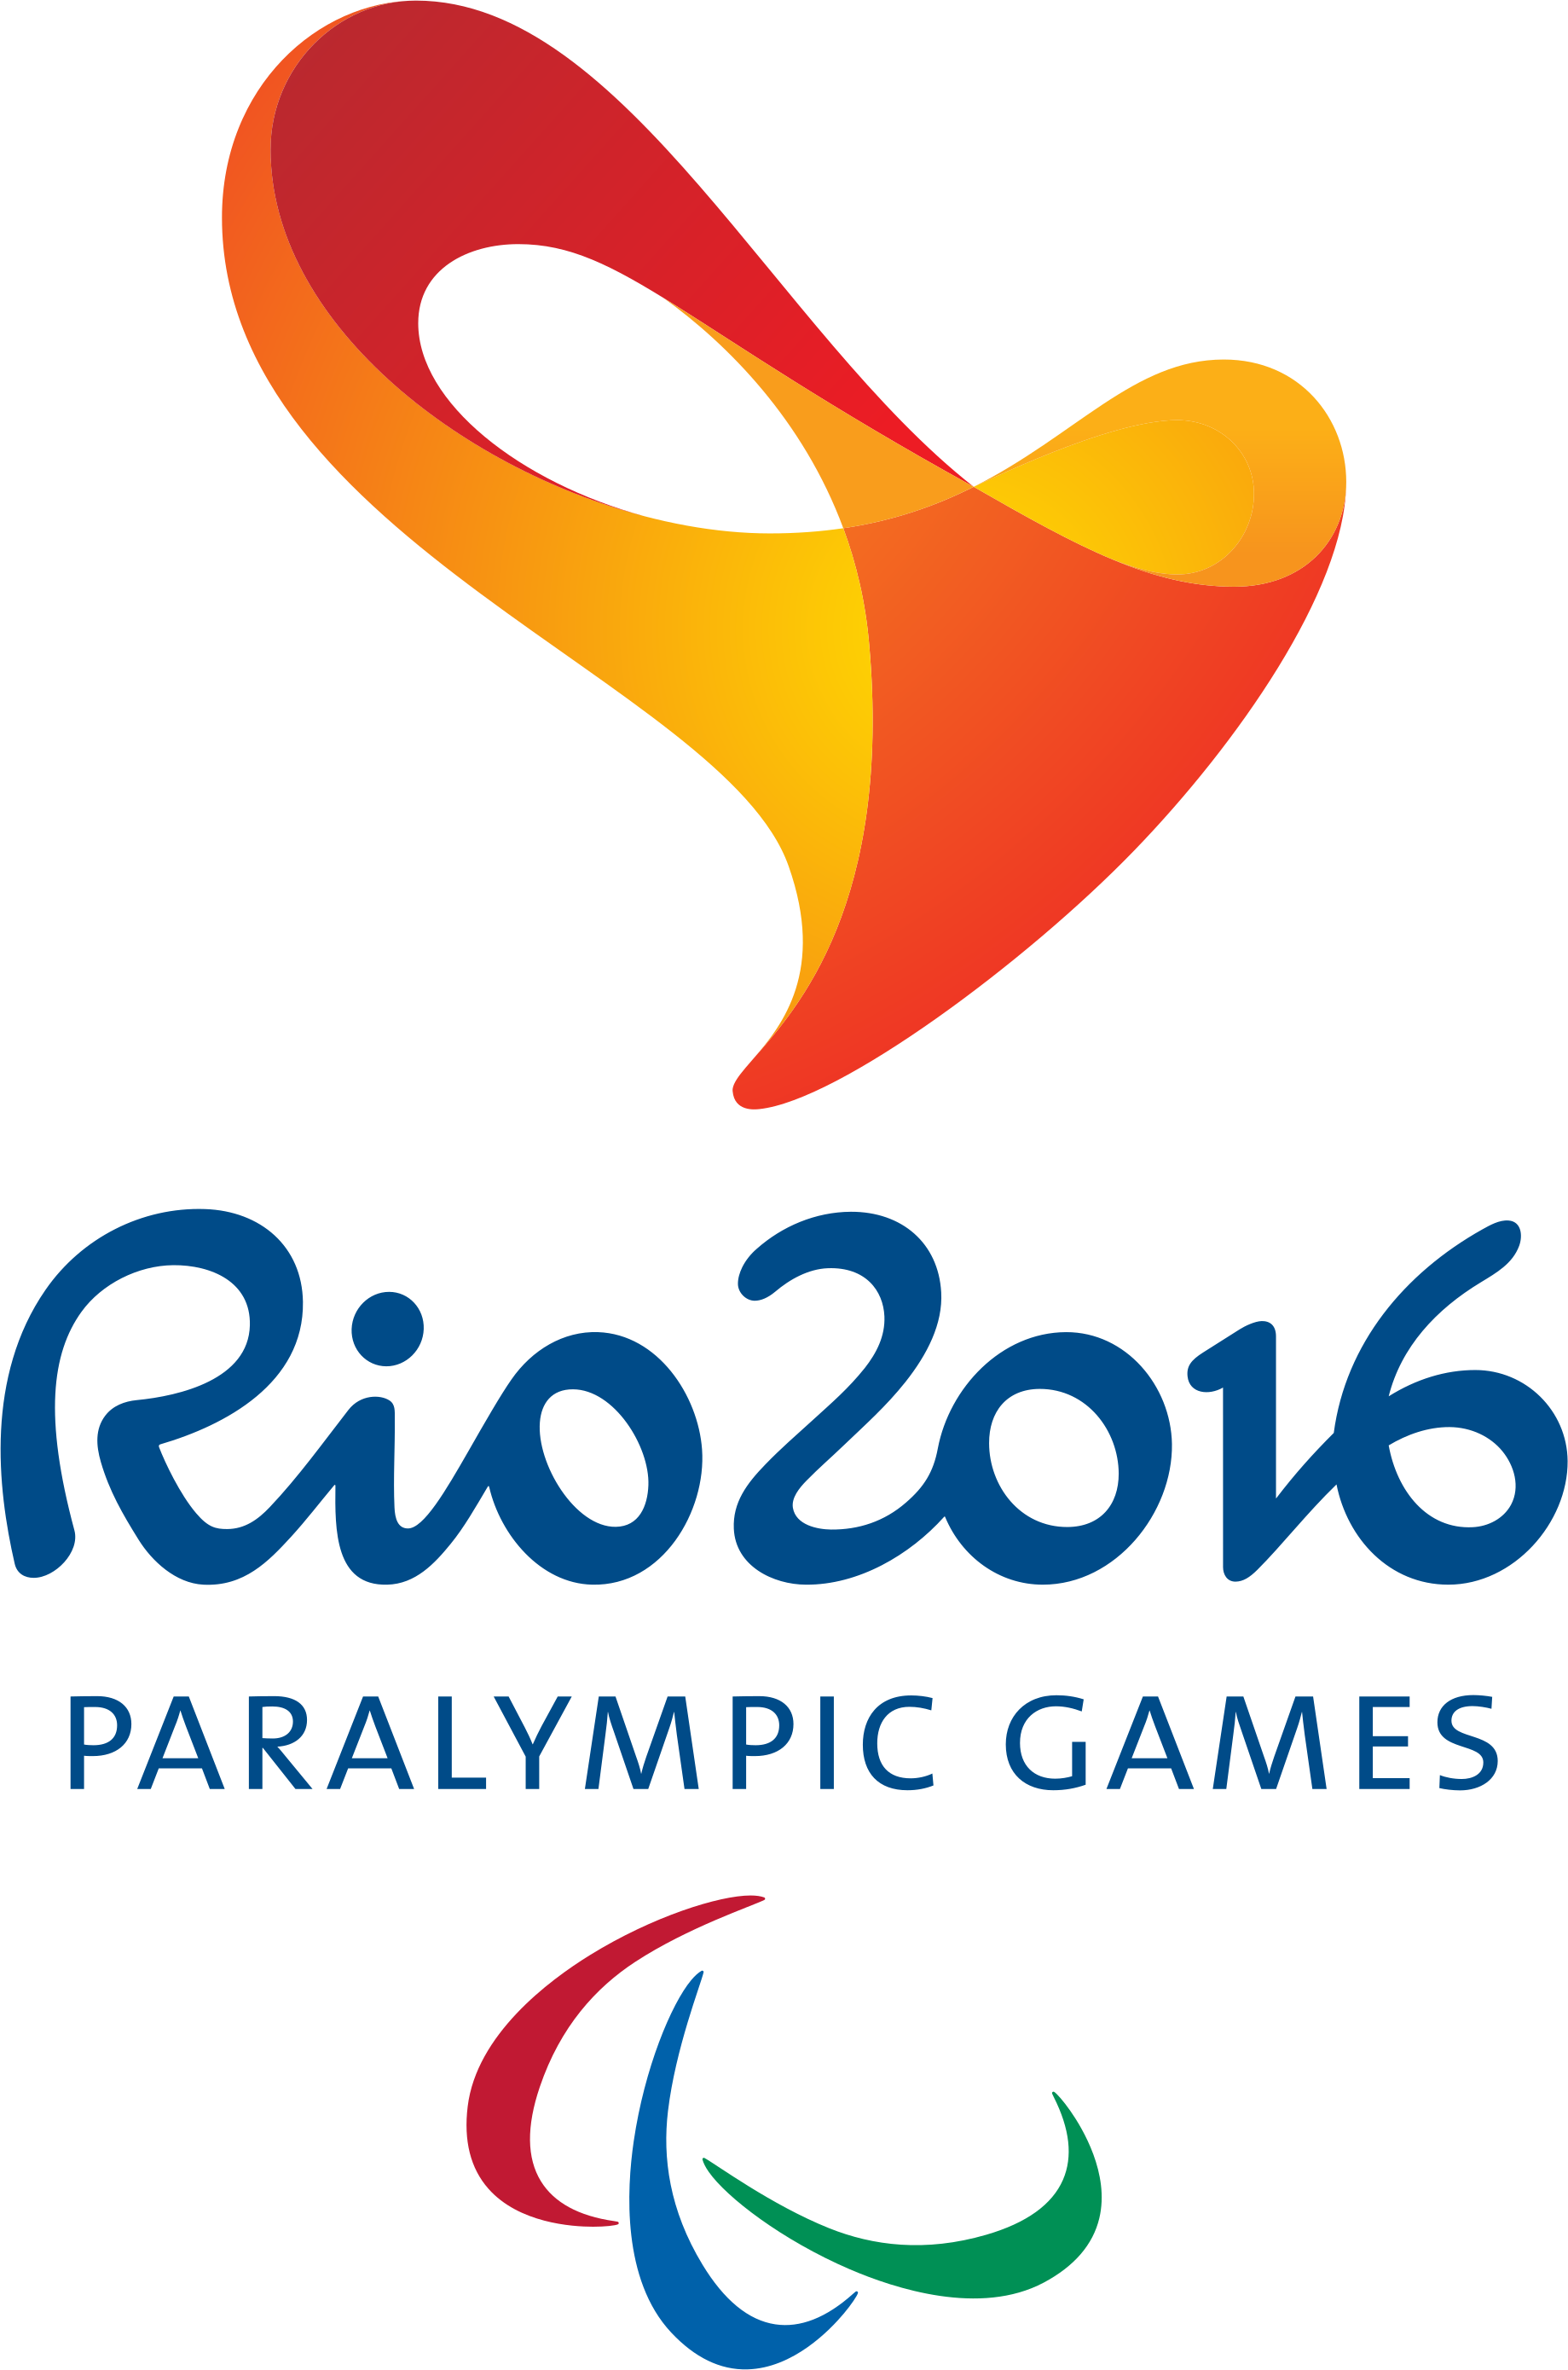 Image paralympic games svg. Rio 2016 logo png graphic black and white stock